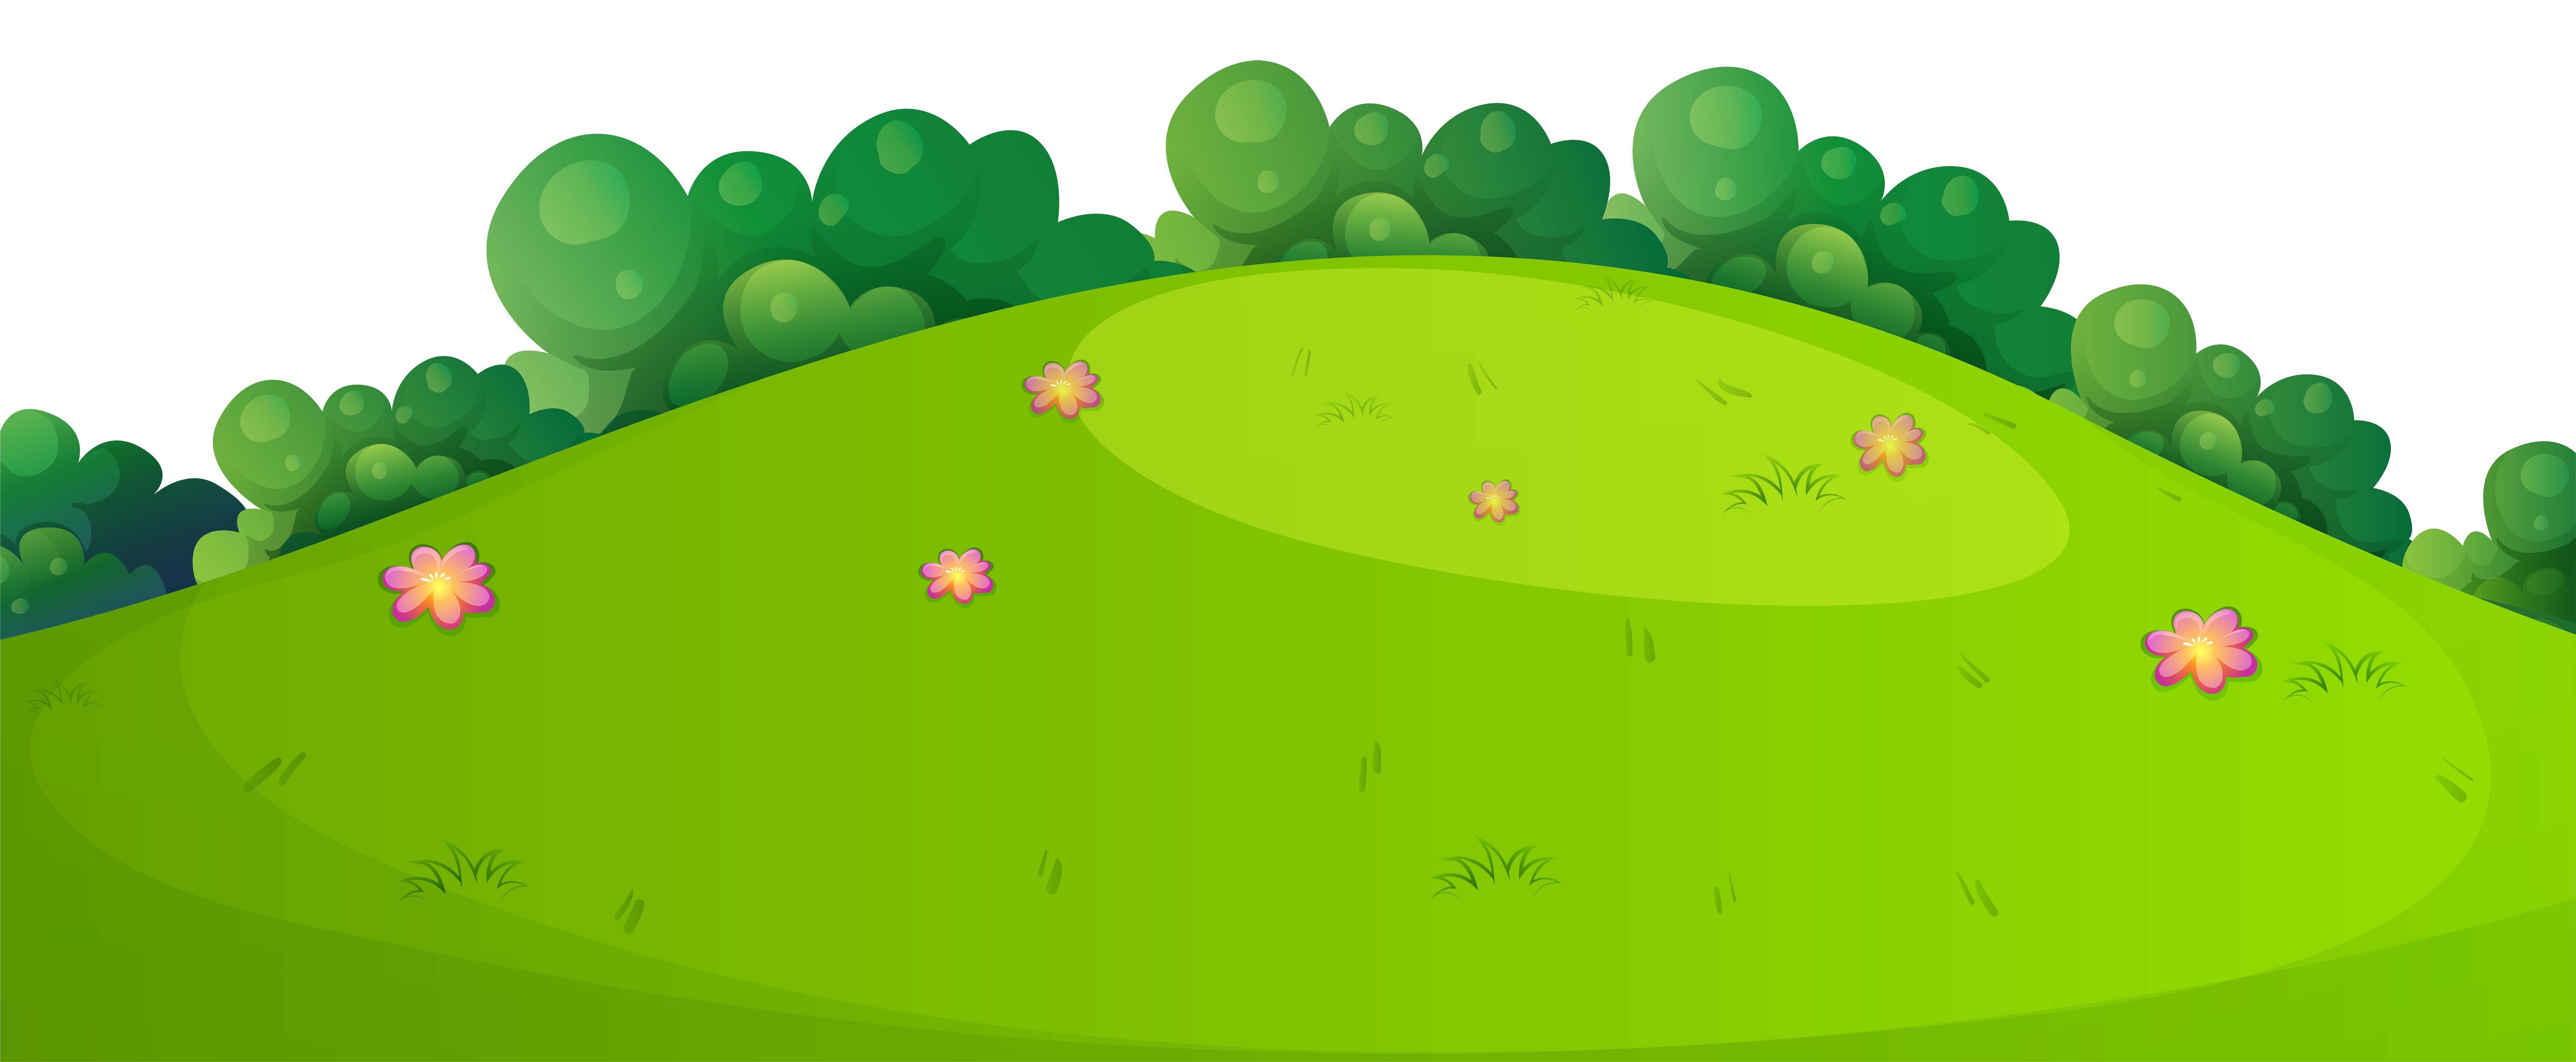 Clipart rock ground. Meadow grass png clip